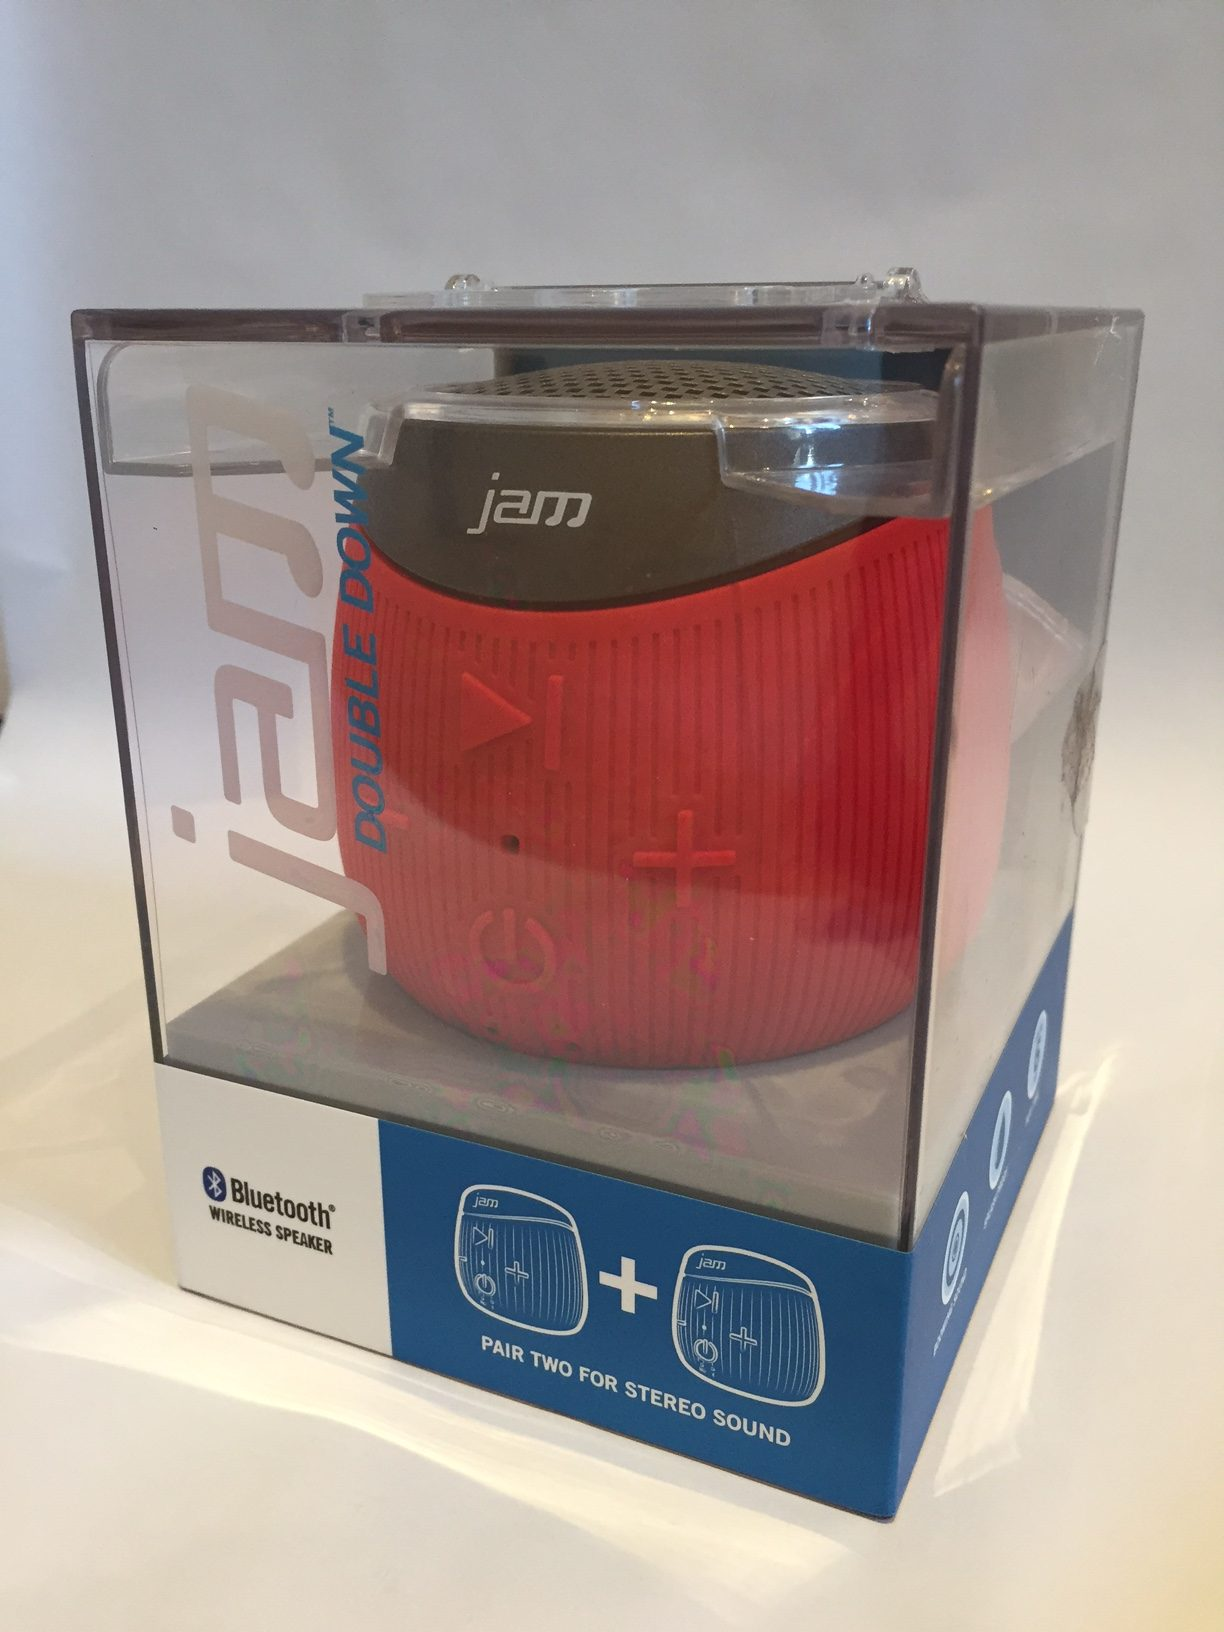 Bluetooth Box Jam Double Down Bluetooth Speaker Review Technuovo